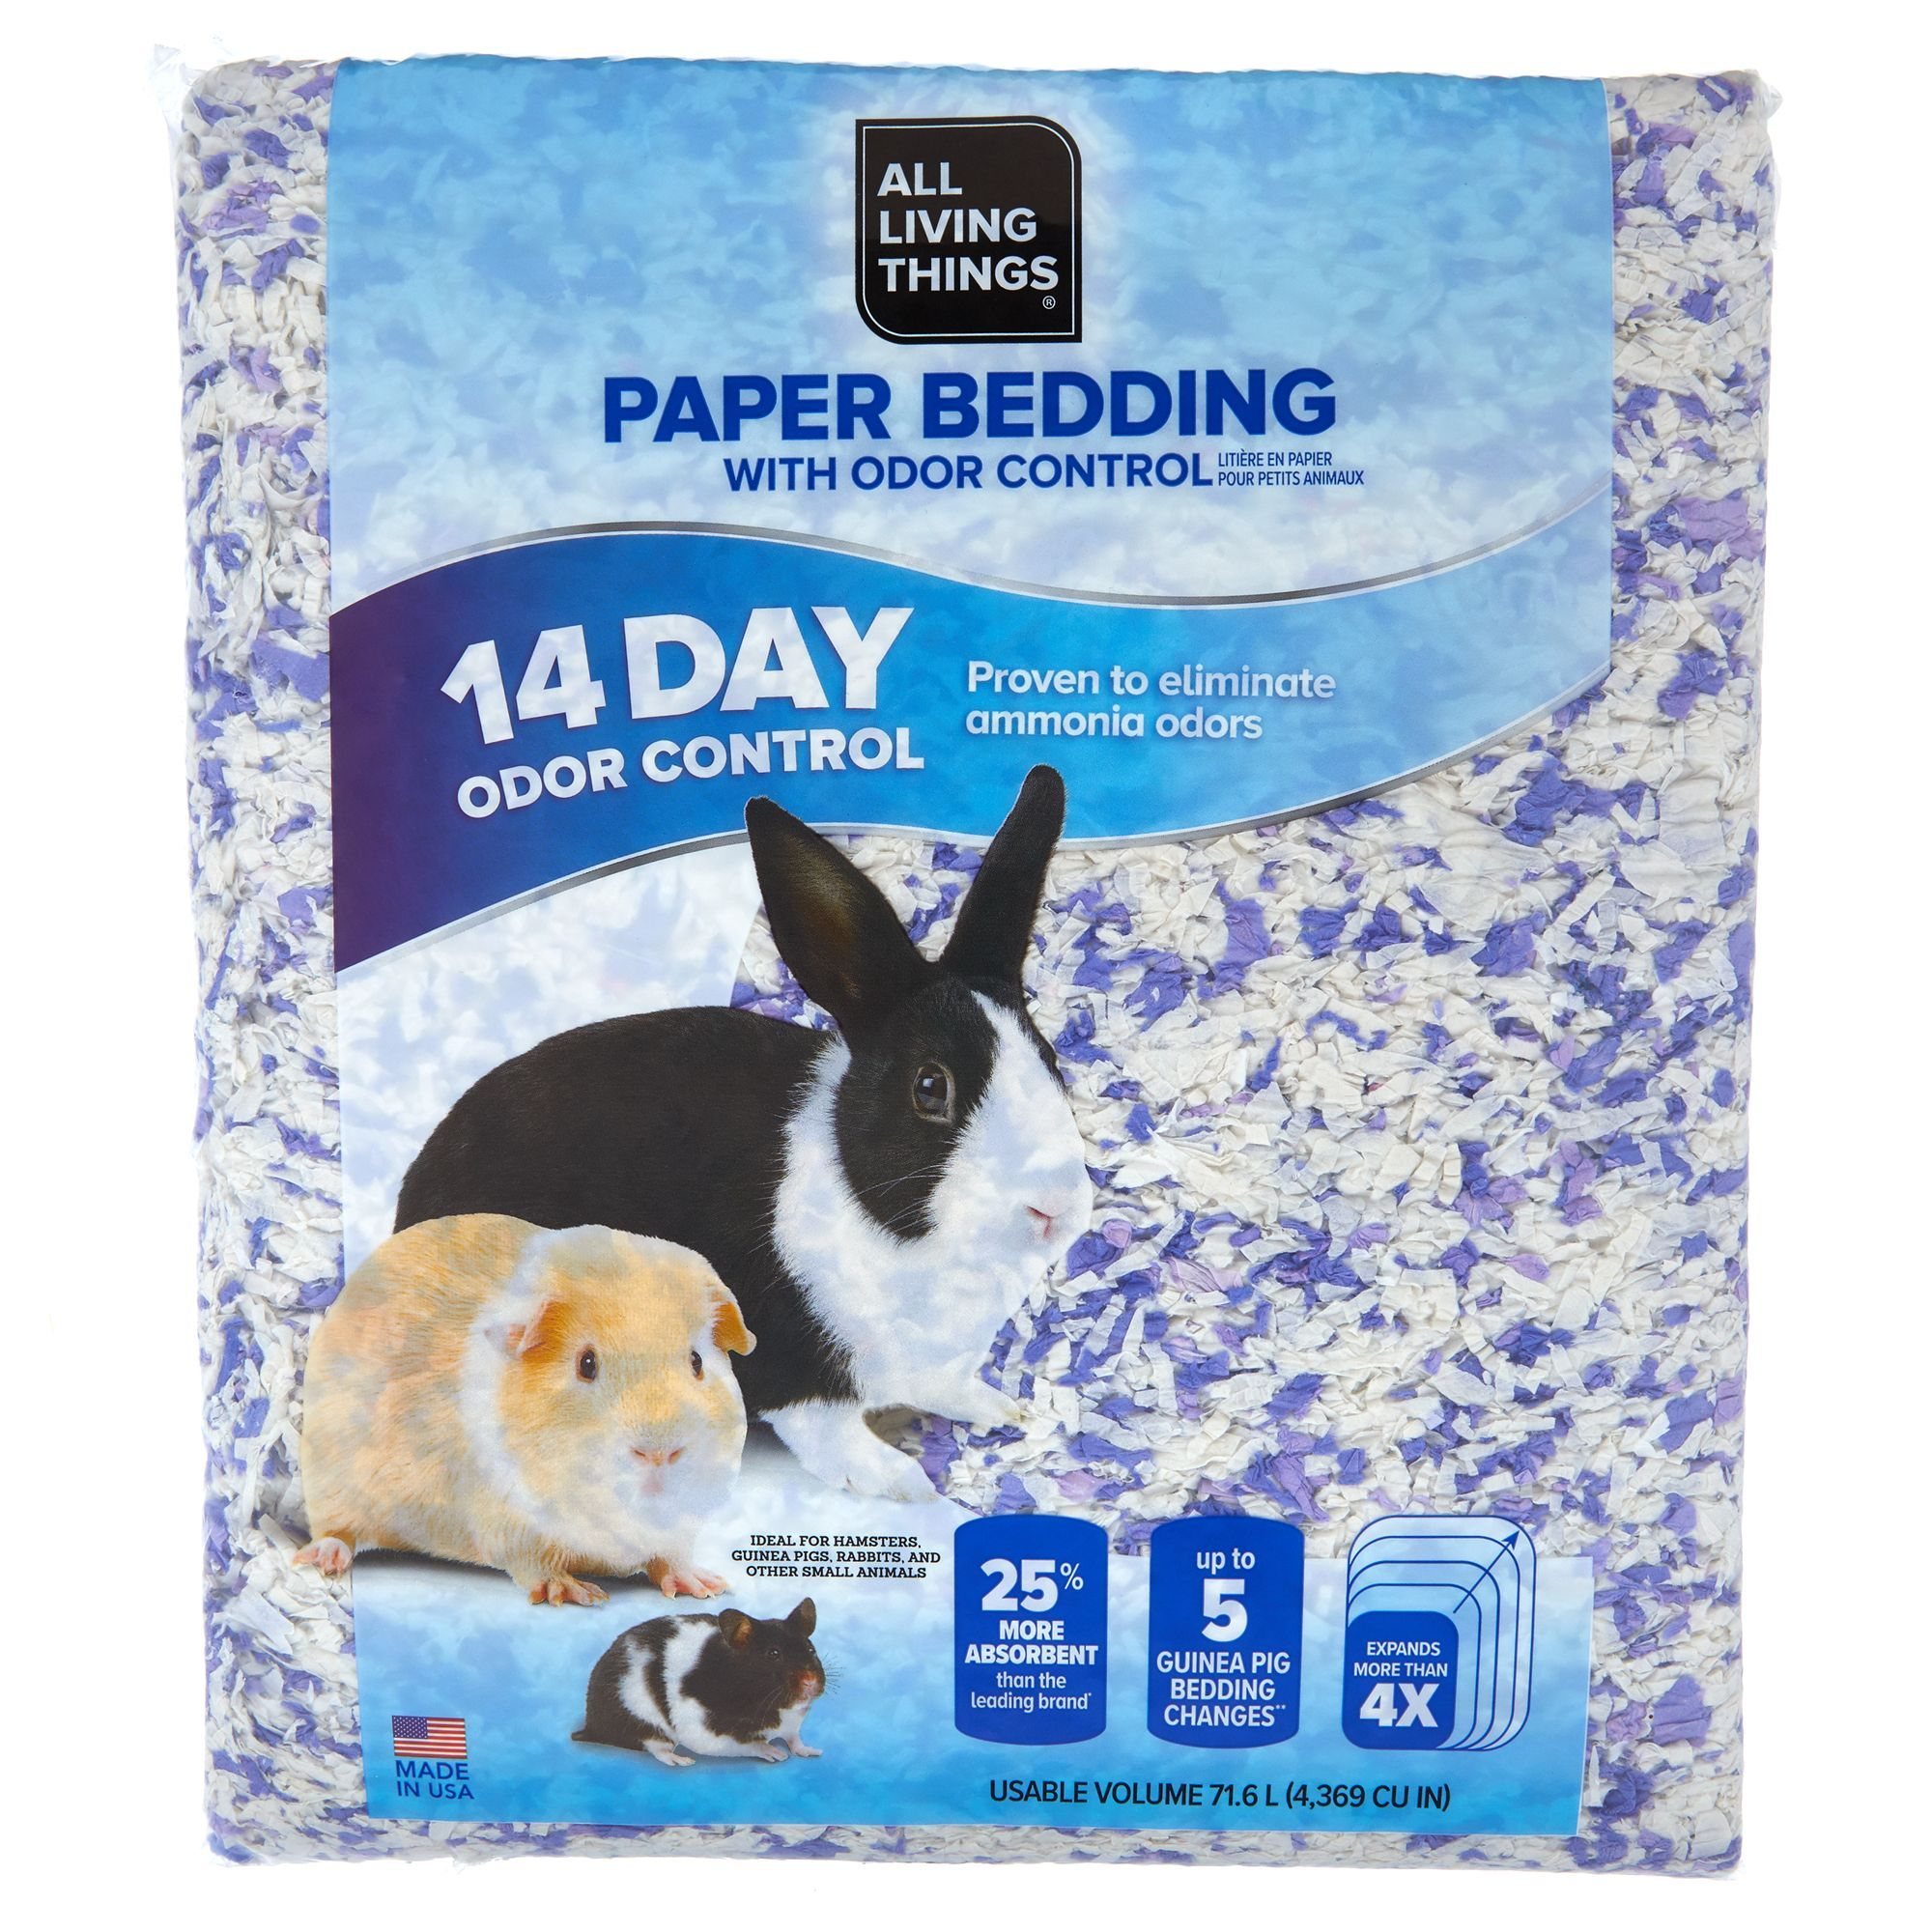 All Living Things Odor Control Small Pet Paper Bedding Size 71 6